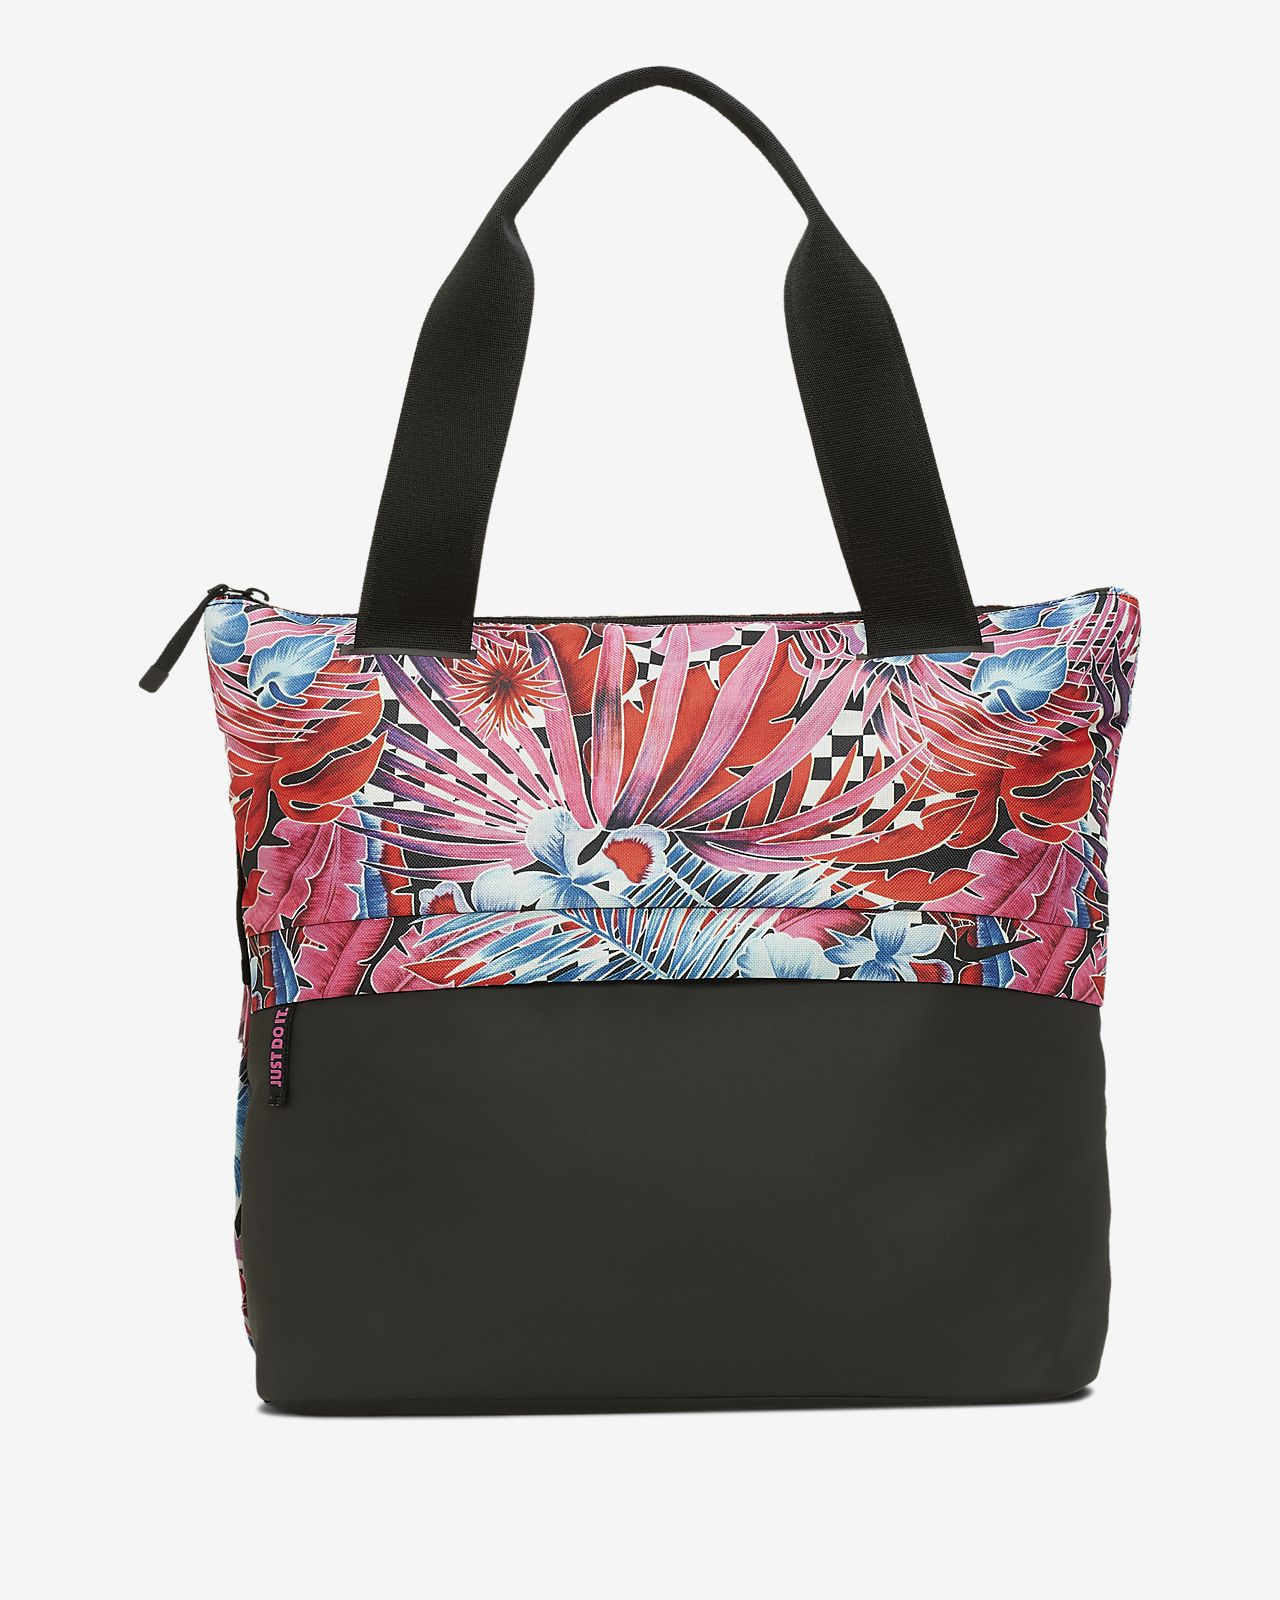 Nike Radiate Women's Training Tote Bag